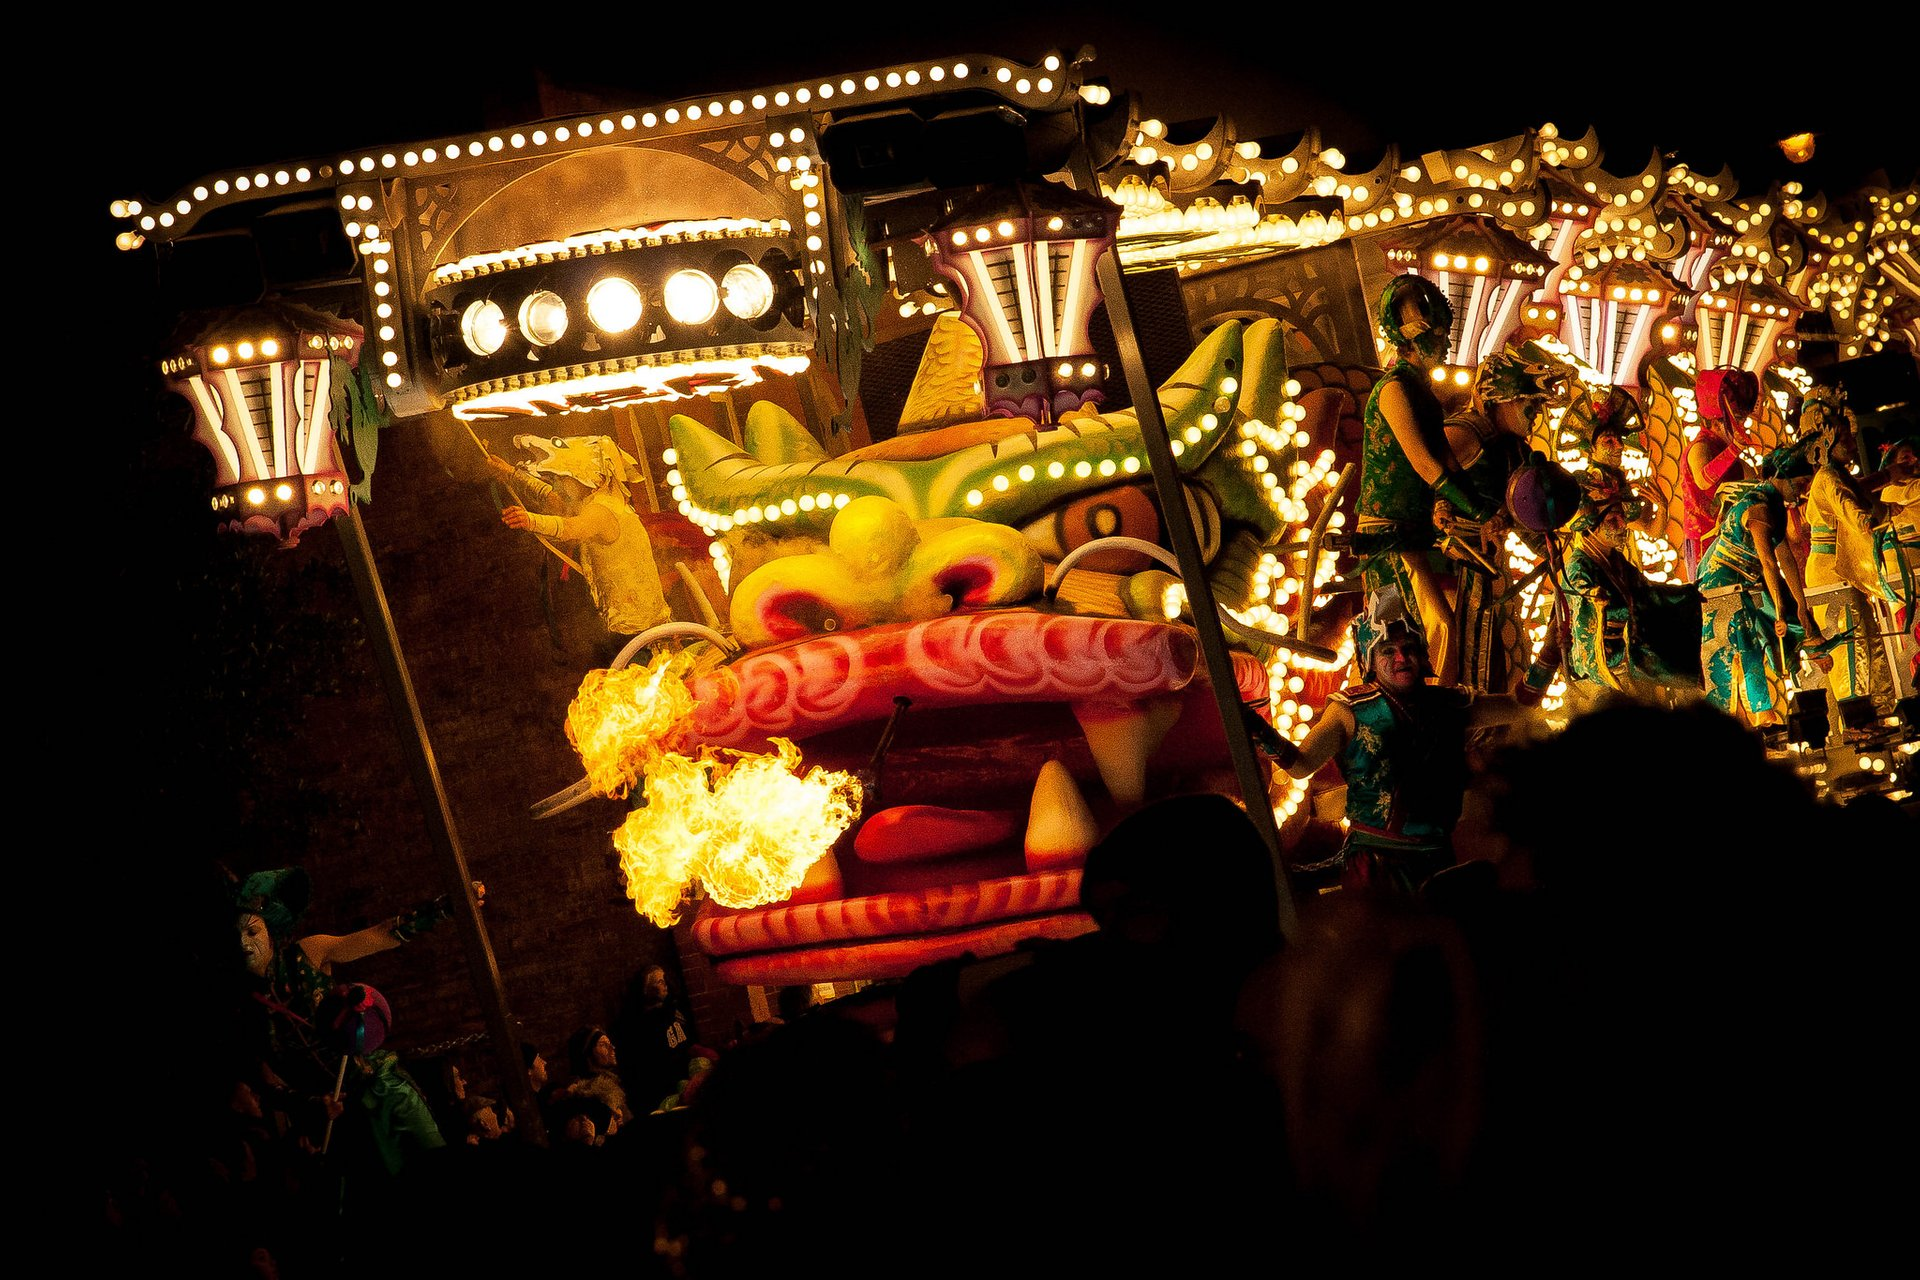 Dragon of the Carnival. One of the impressive floats at Glastonbury Carnival 2020